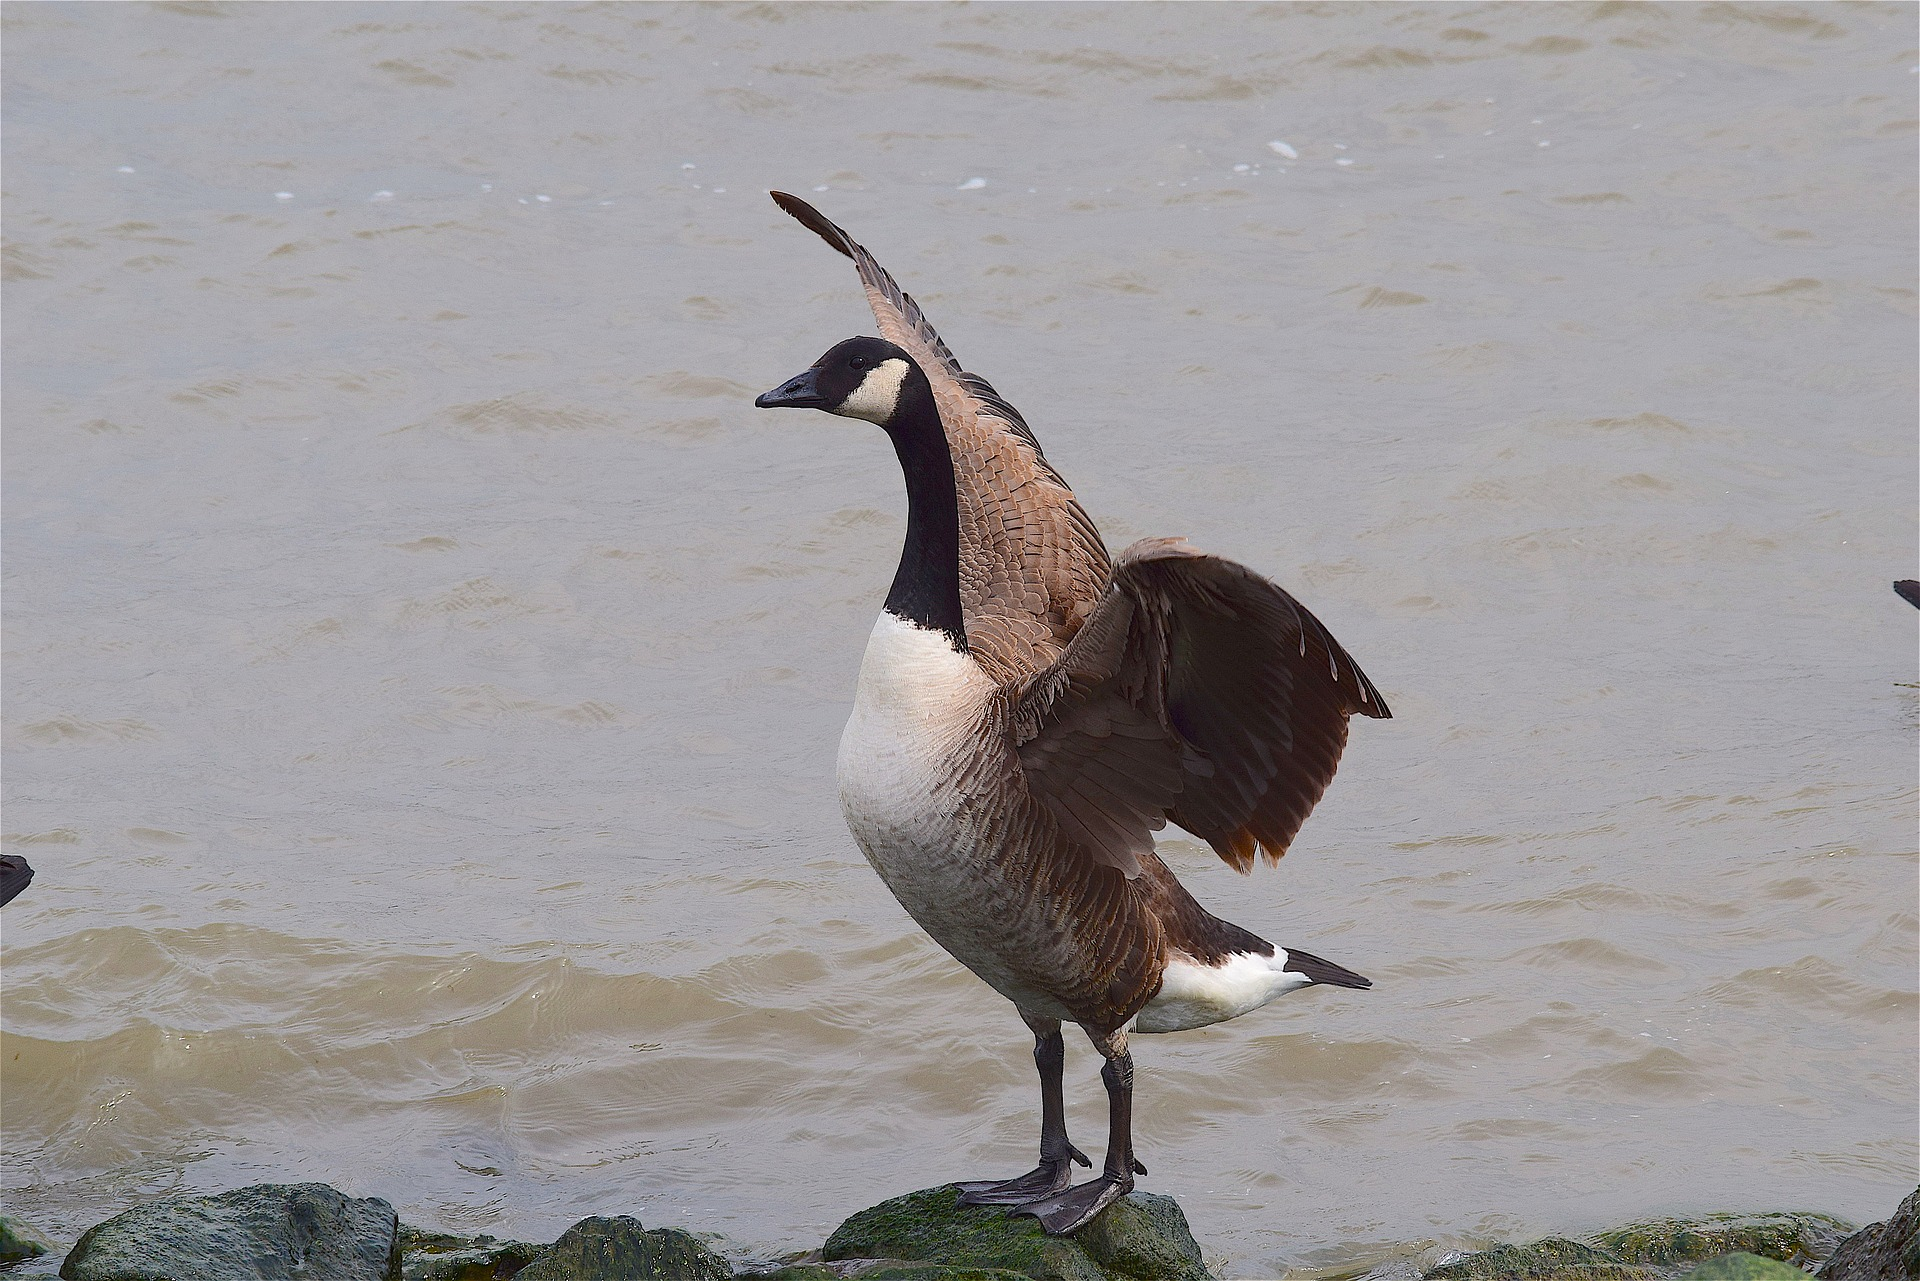 goose with wings spread